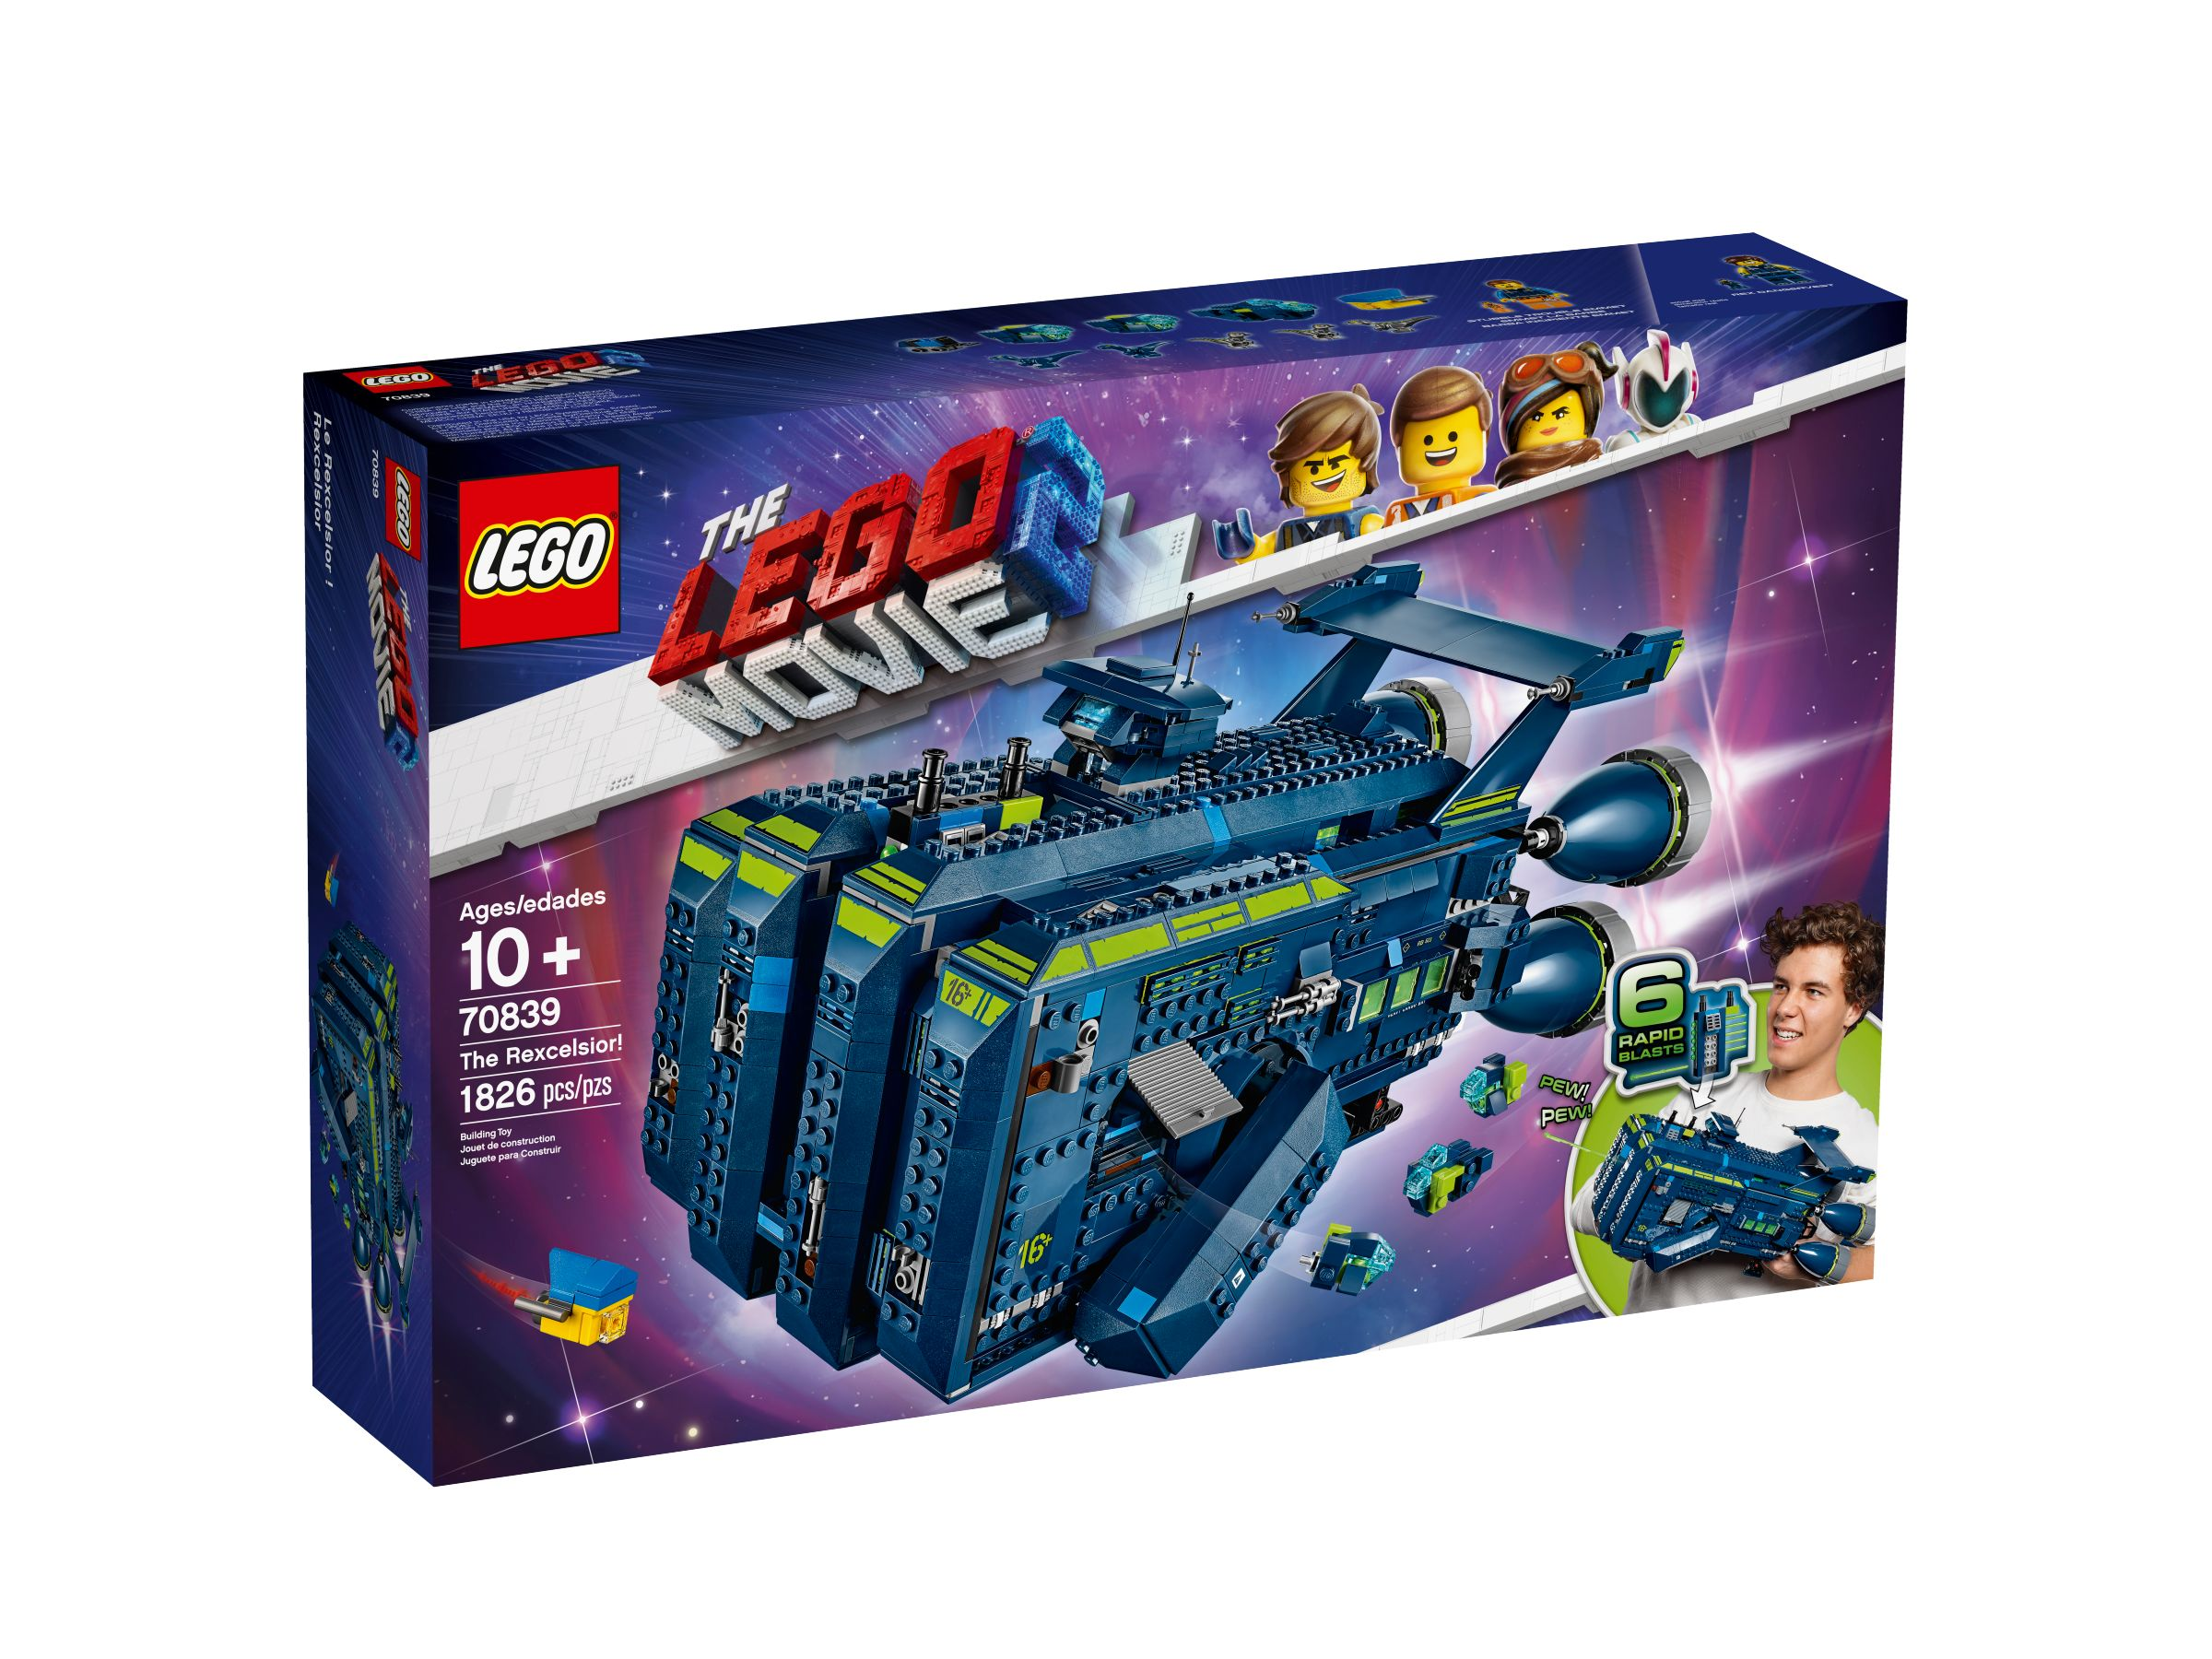 LEGO The LEGO Movie 2 70839 Die Rexcelsior! LEGO_70839_alt1.jpg